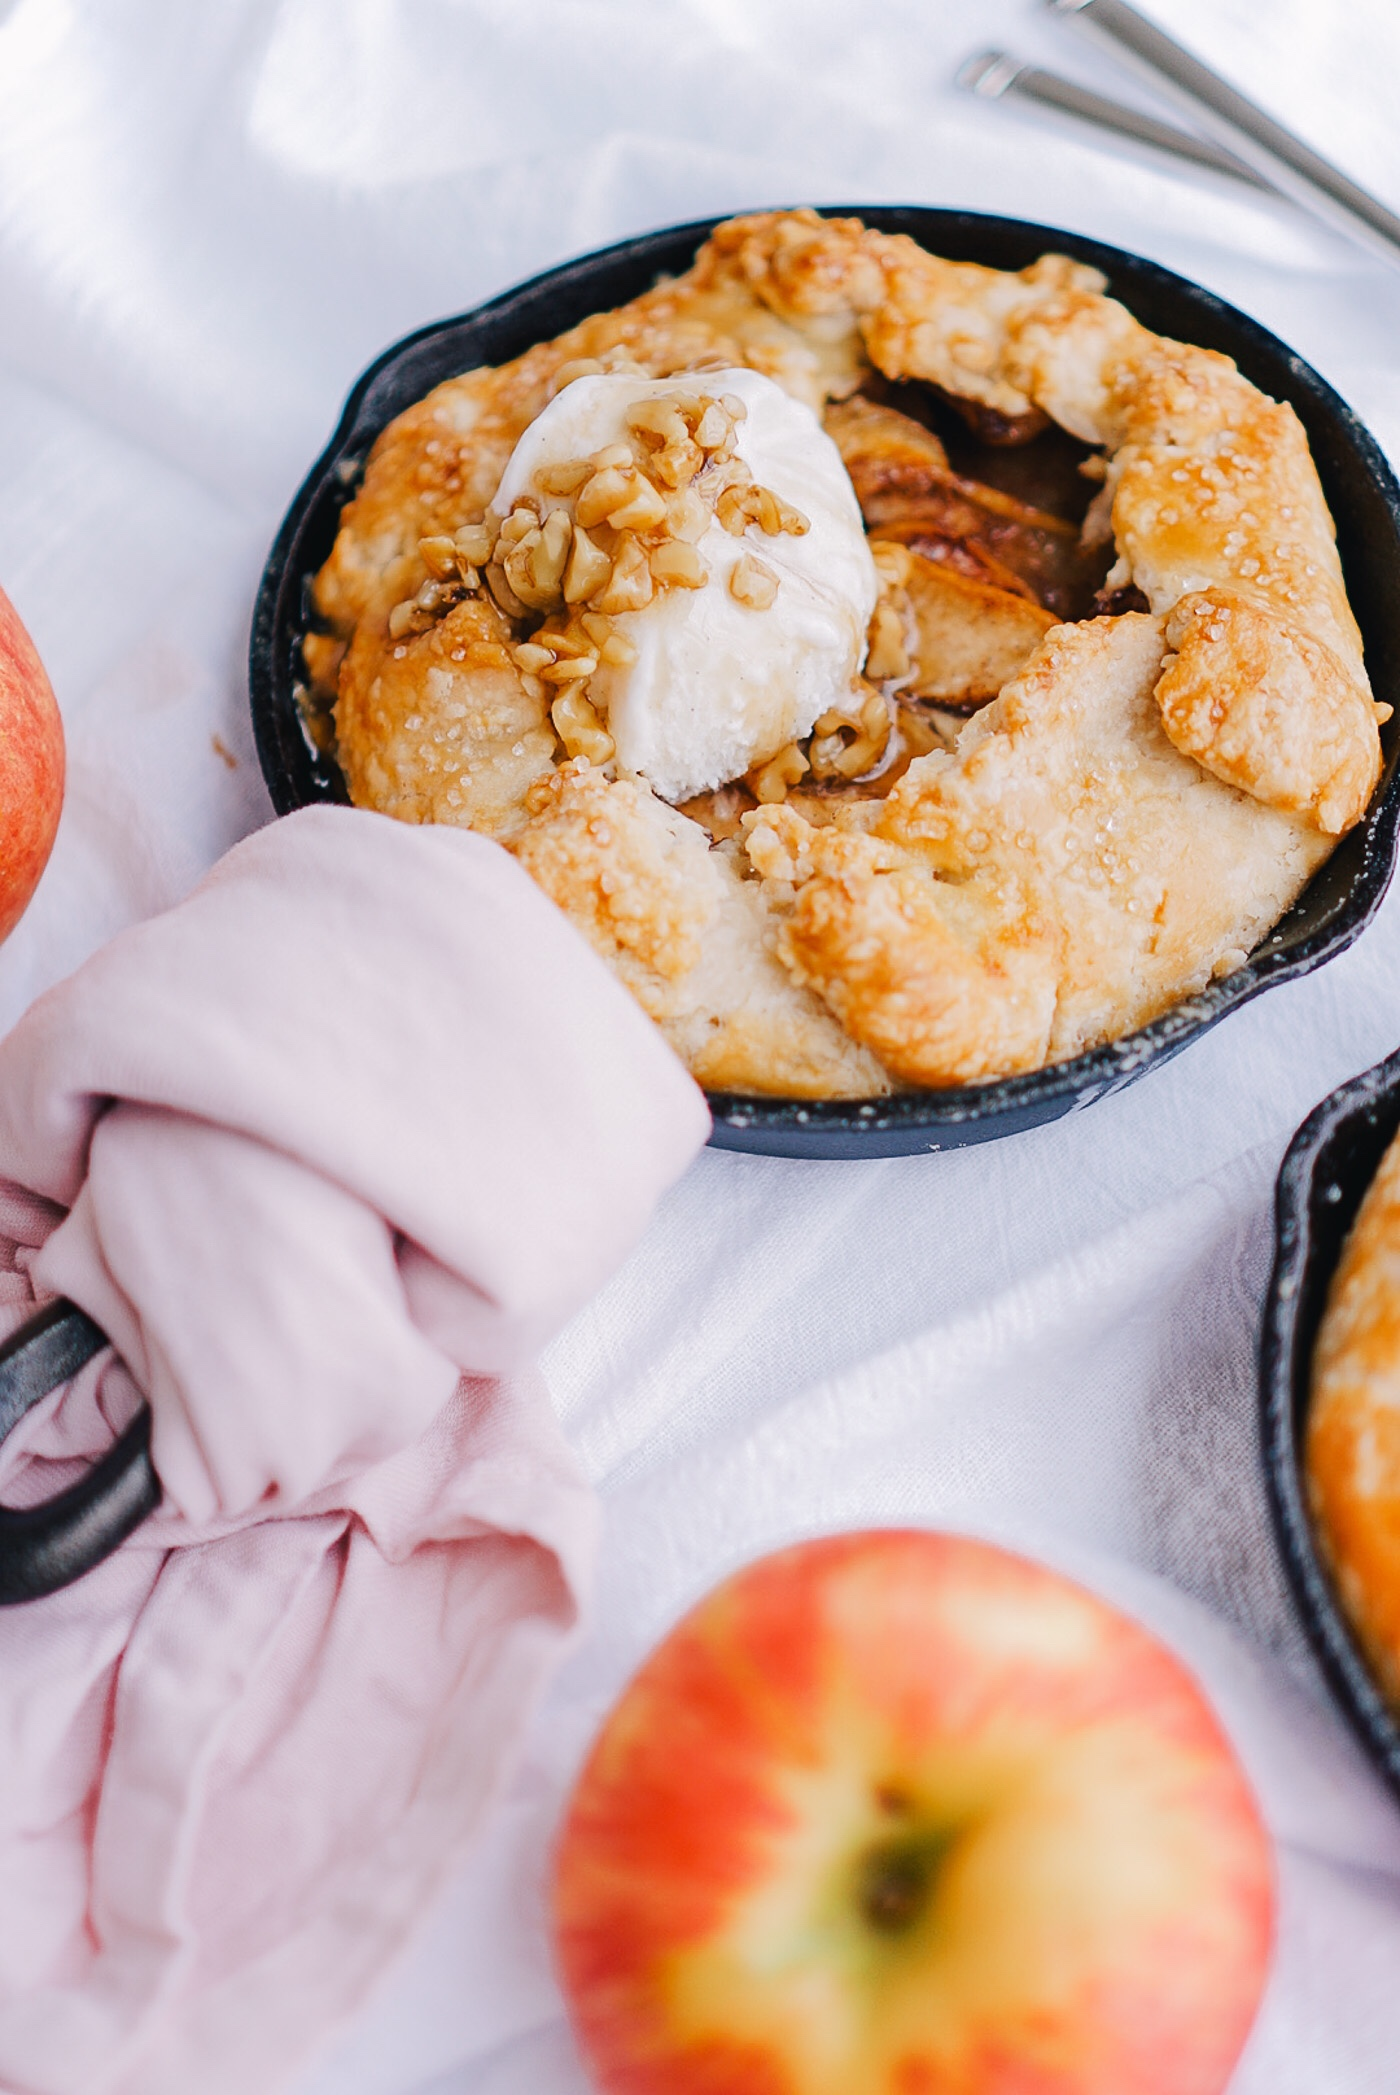 Easy apple pies in small cast iron skillets with light pink dish towel on white backdrop.